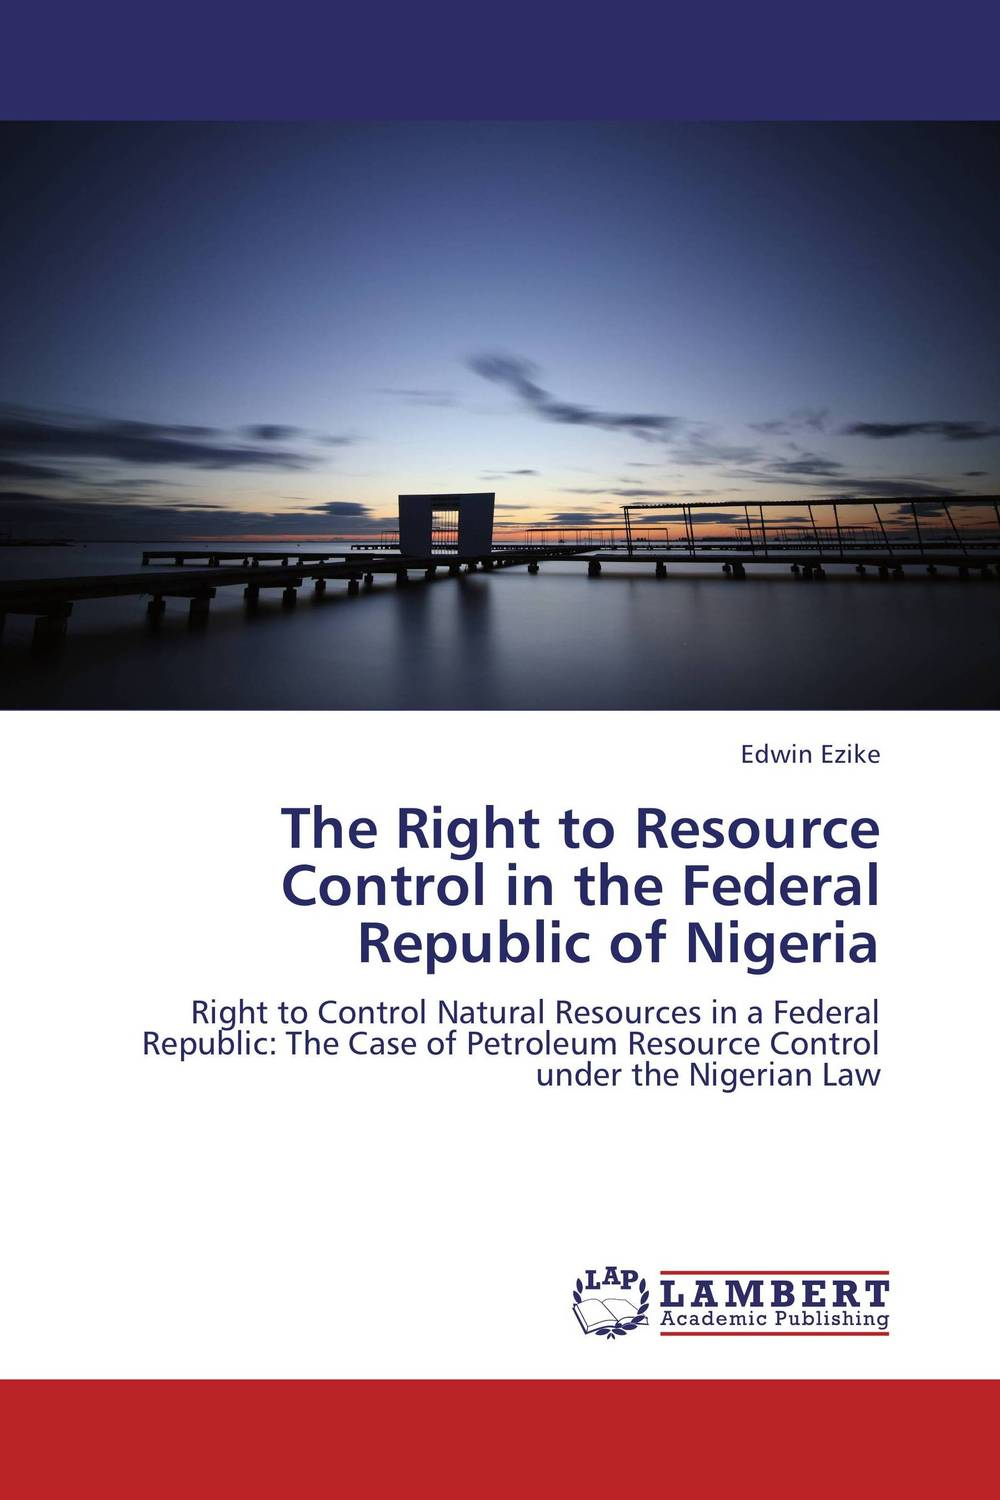 купить The Right to Resource Control in the Federal Republic of Nigeria недорого